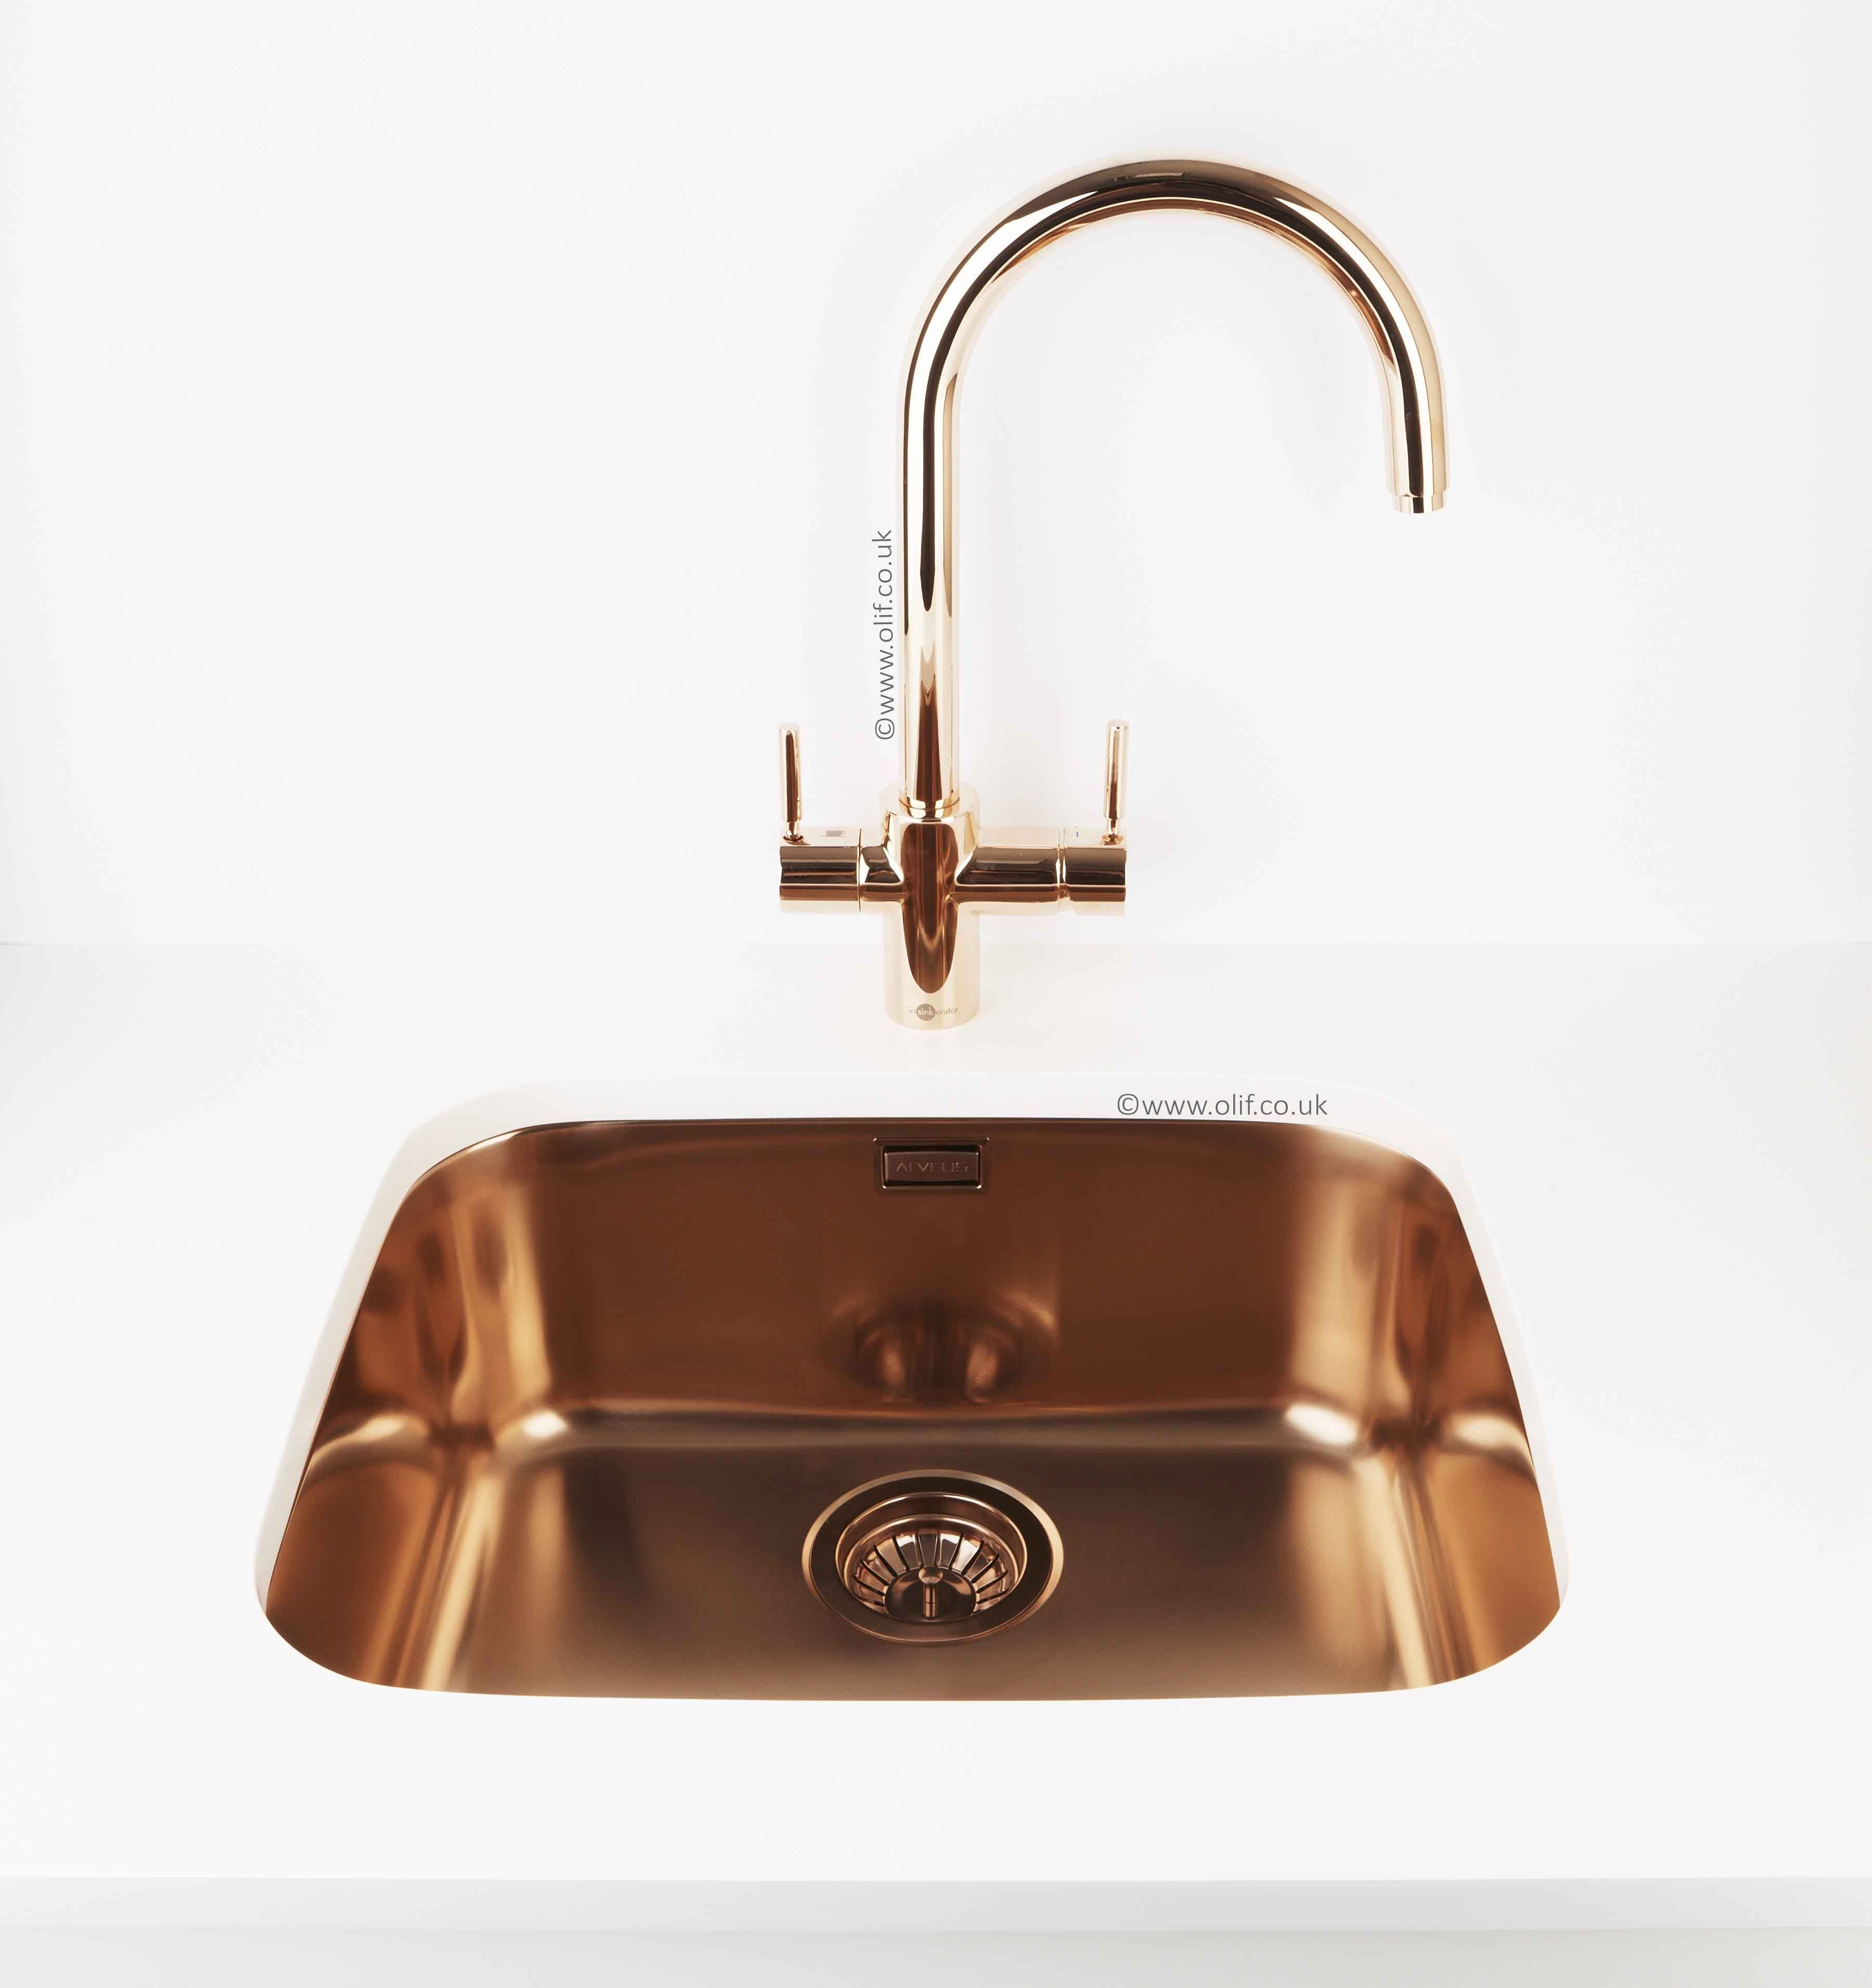 Rose Gold Insinkerator And Variant 10 Copper Undermount Sink Make For A Luxurious Combo Making A Cuppa Has N Water Tap Stainless Steel Tanks Rose Gold Kitchen